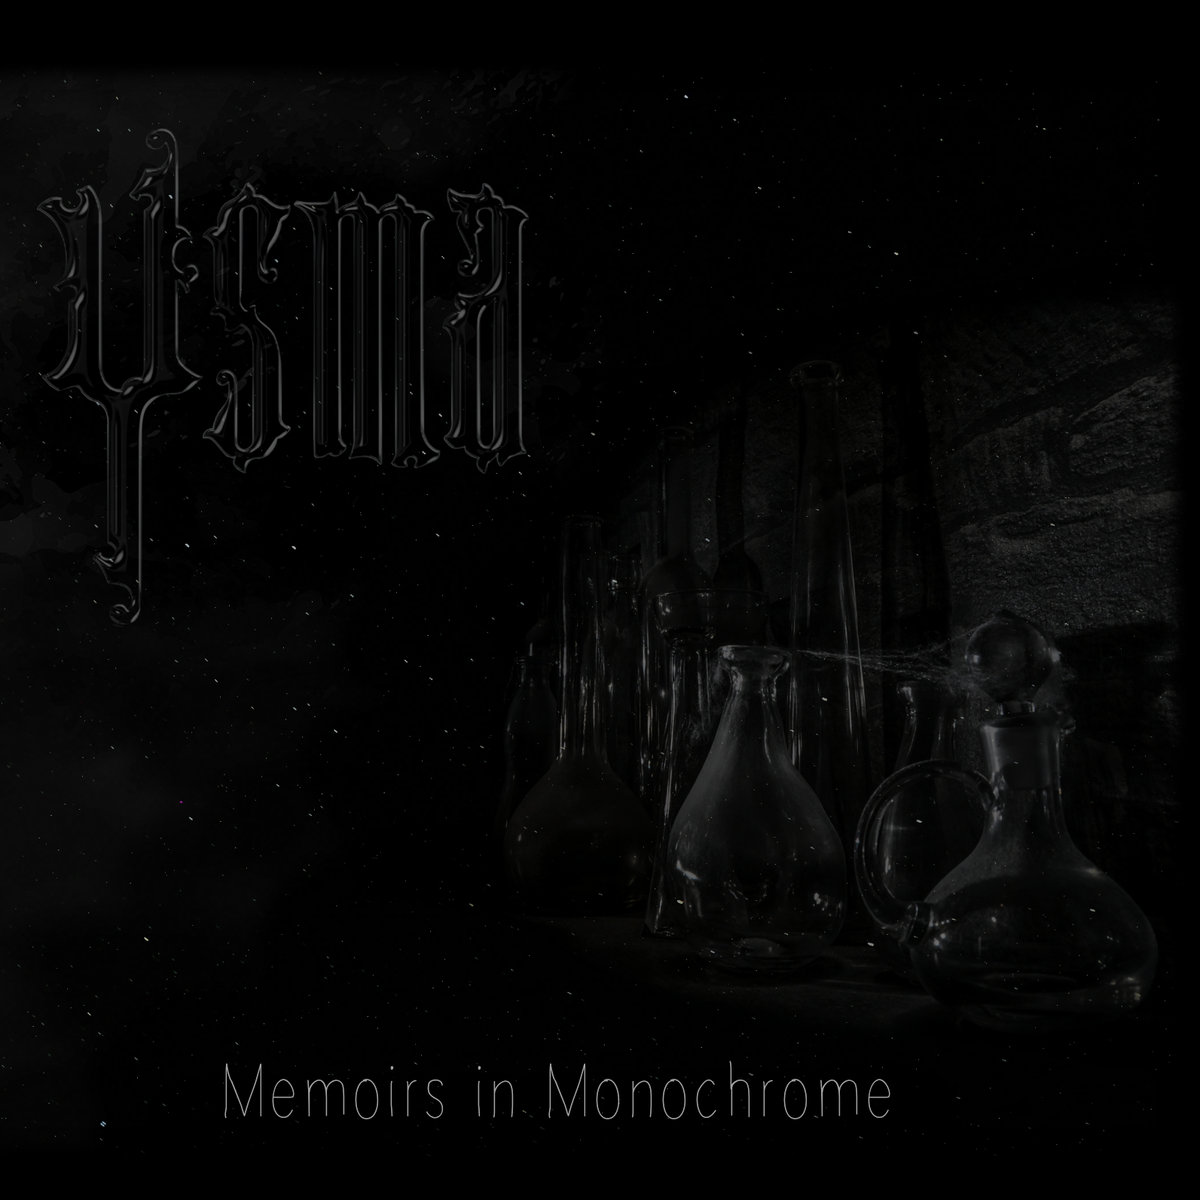 Ysma: Memoirs in Monochrome